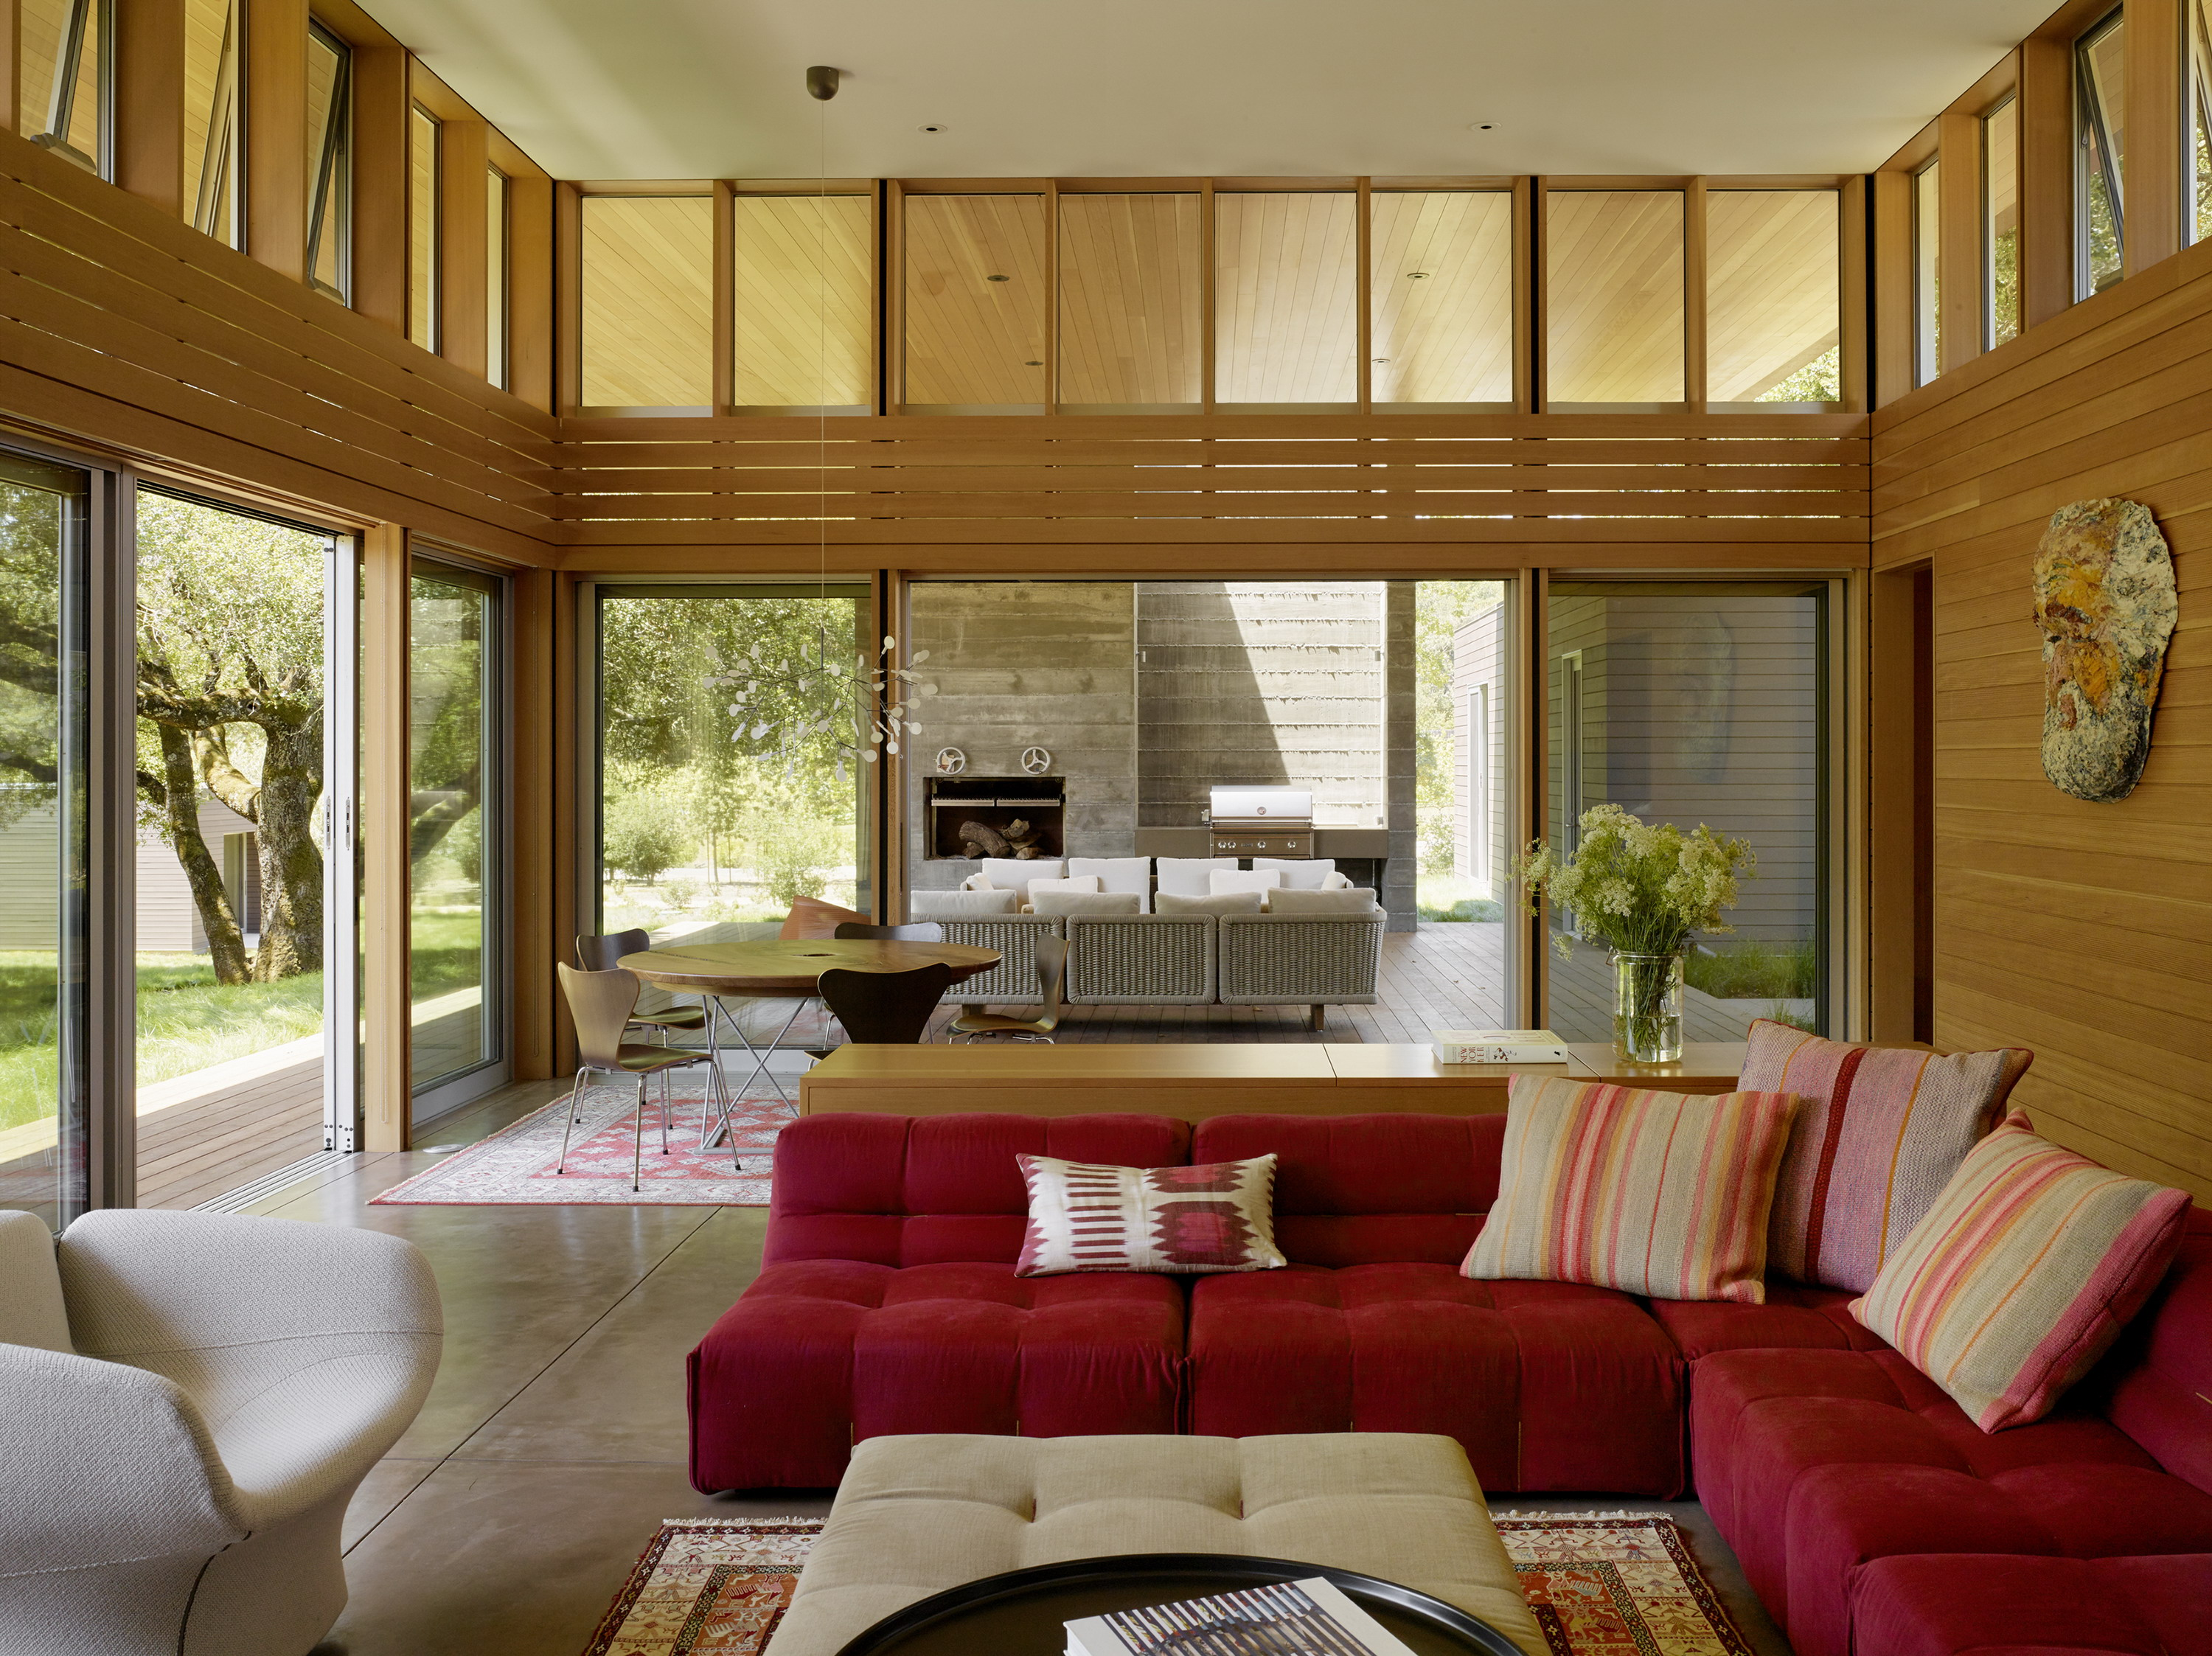 Sonoma Residence by Turnbull Griffin Haesloop Architects